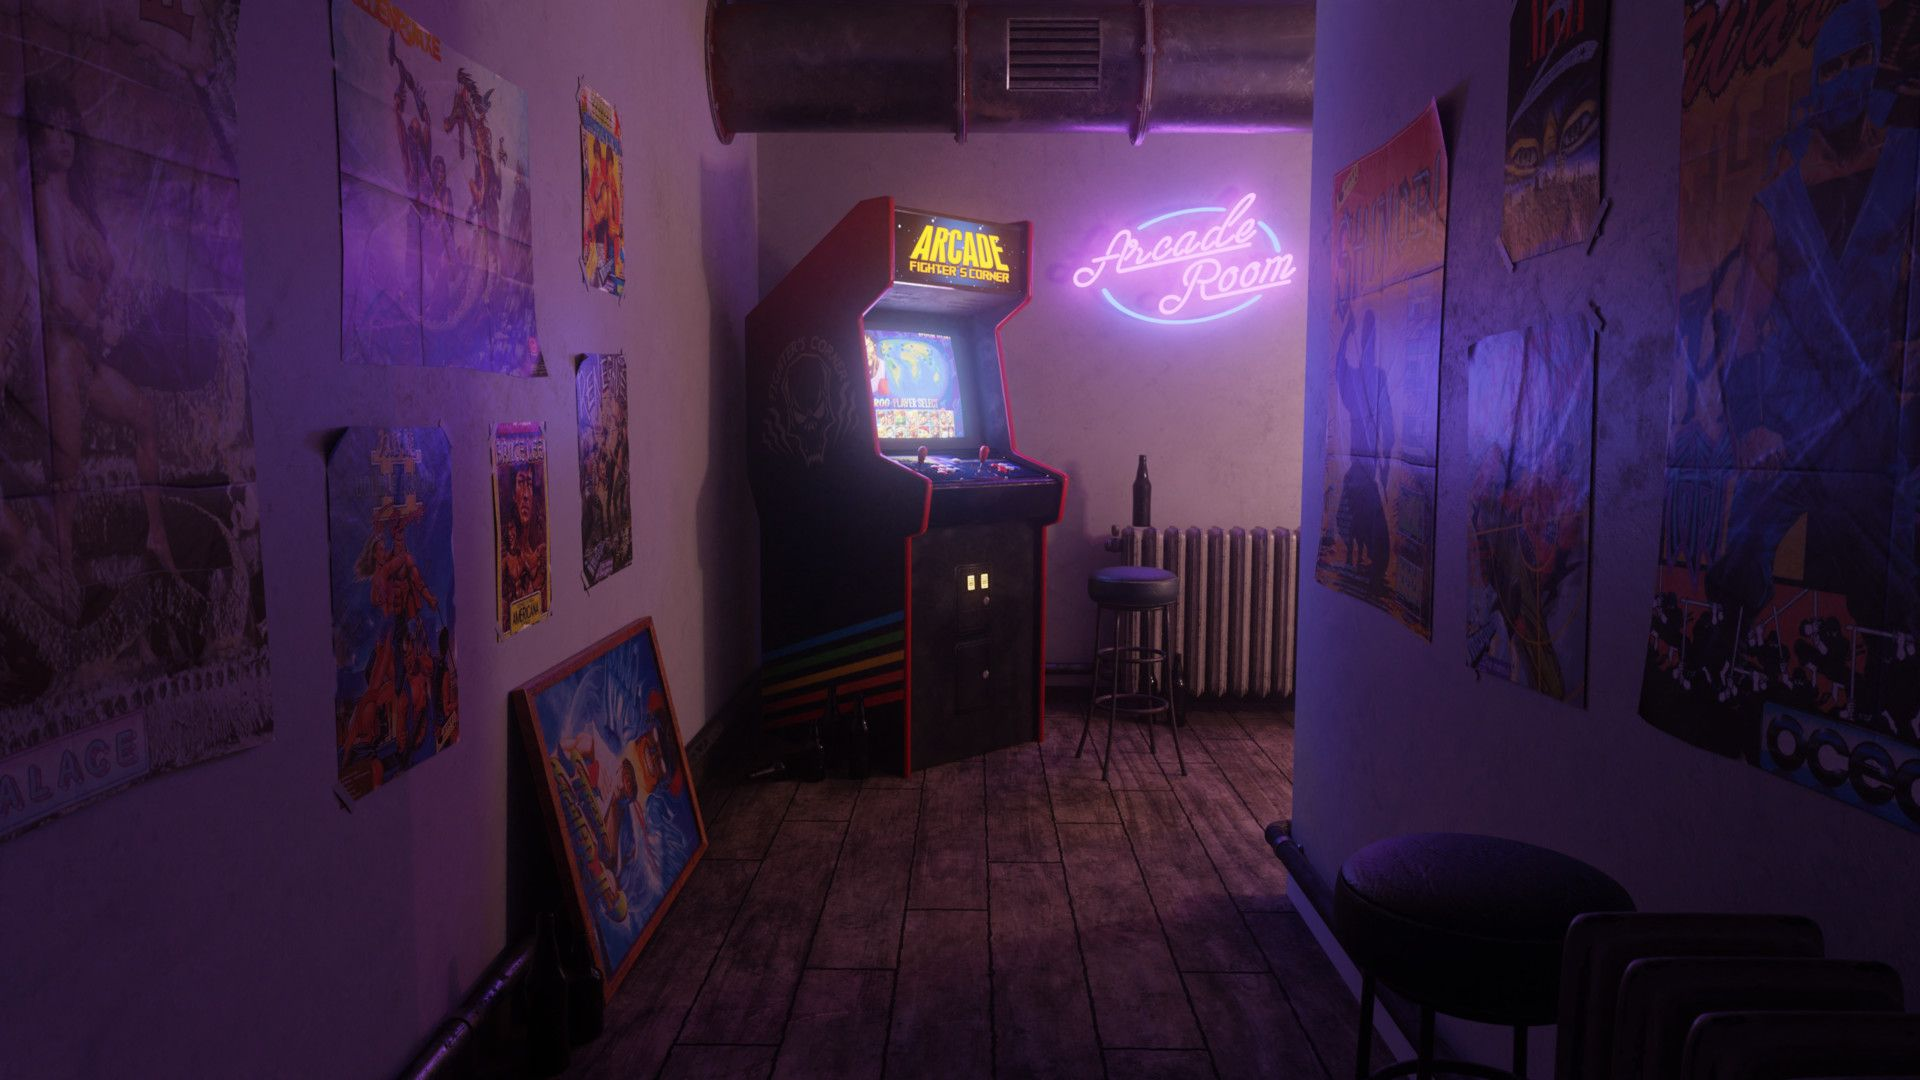 Arcade Room [19201080] Hdwallpaper wallpaper image